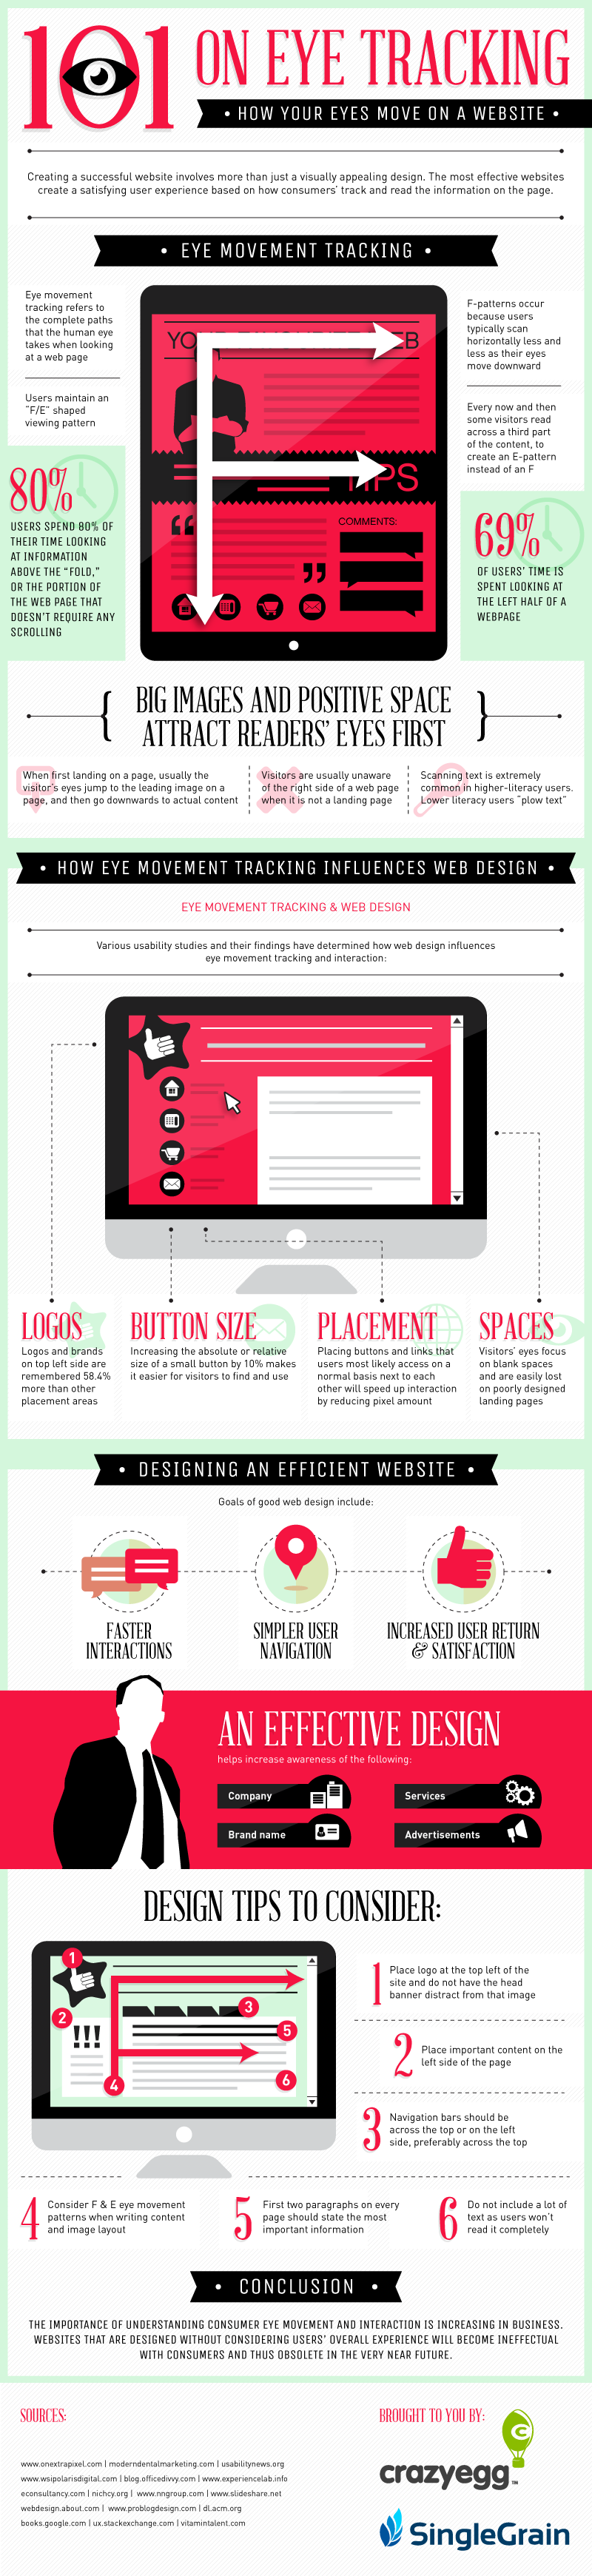 101-on-eye-tracking-how-your-eyes-move-on-a-website-infographic